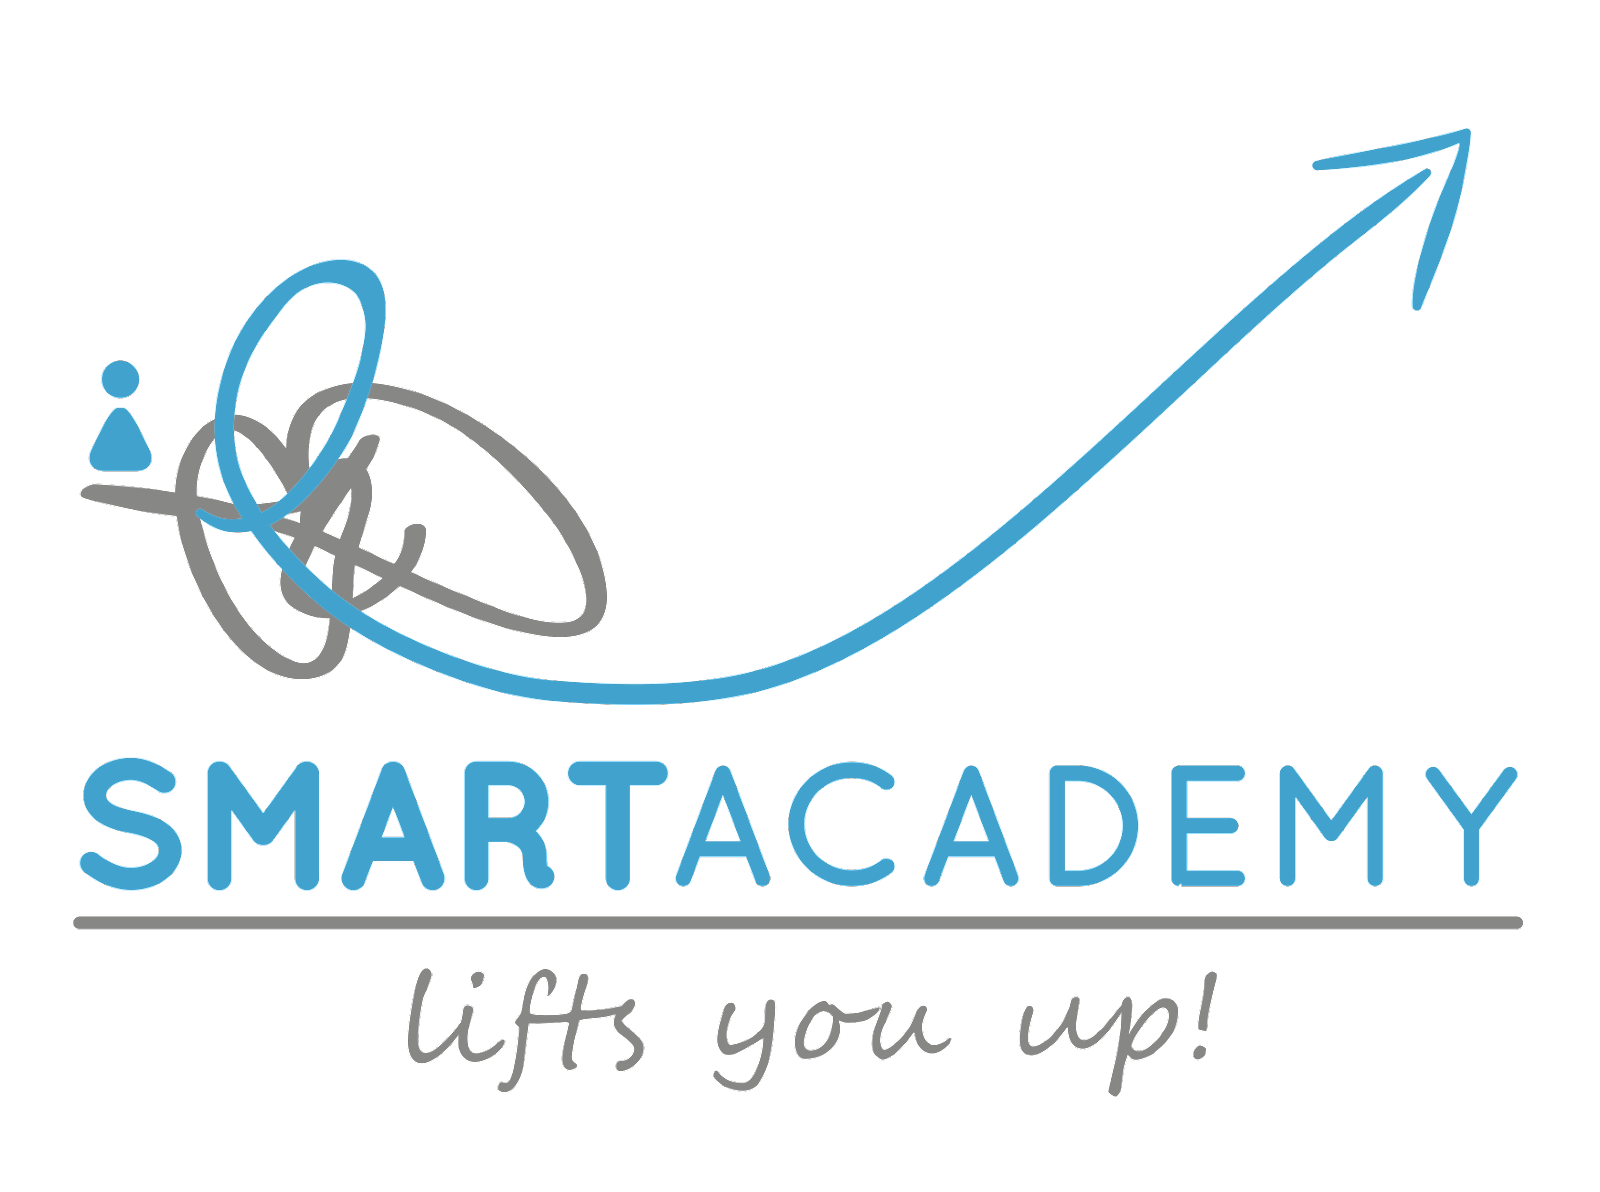 Smart Academy Logo Png.png